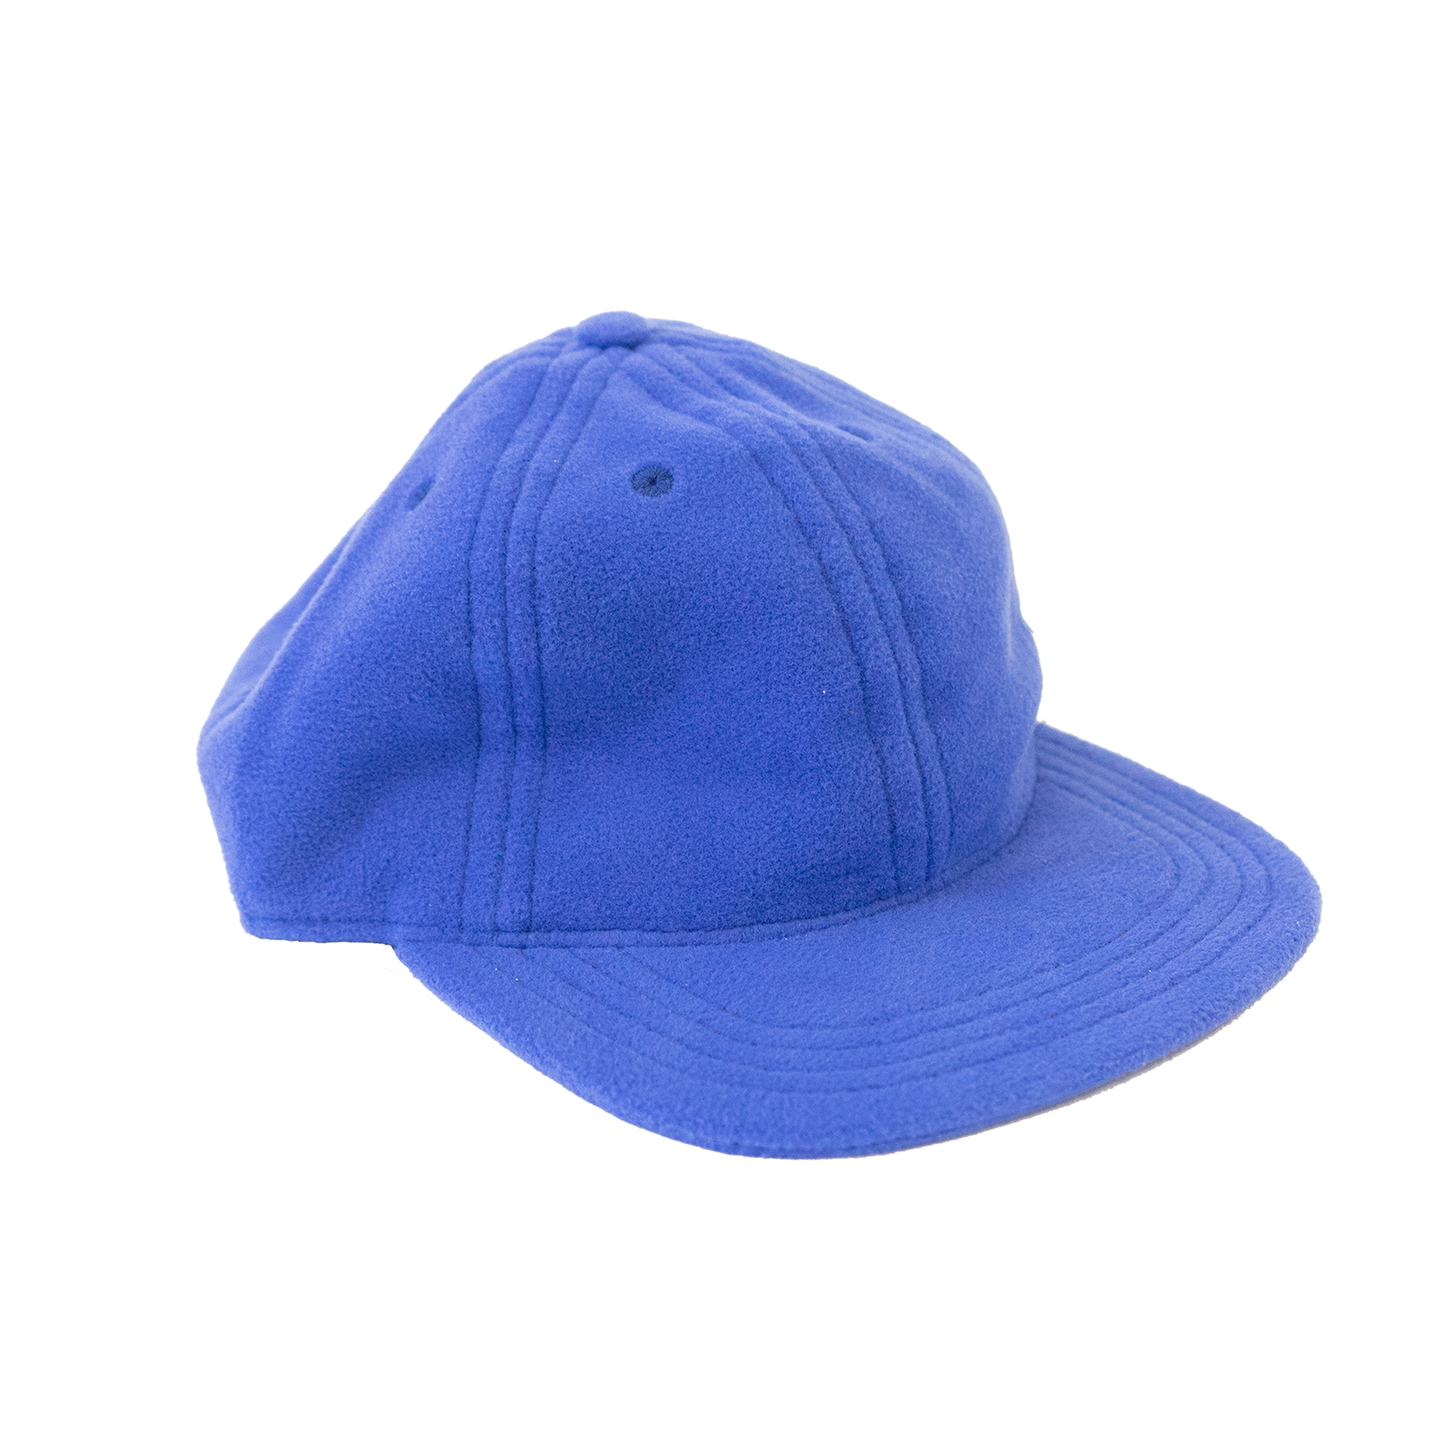 Adjustable Cap in Royal Purple Polartec Fleece